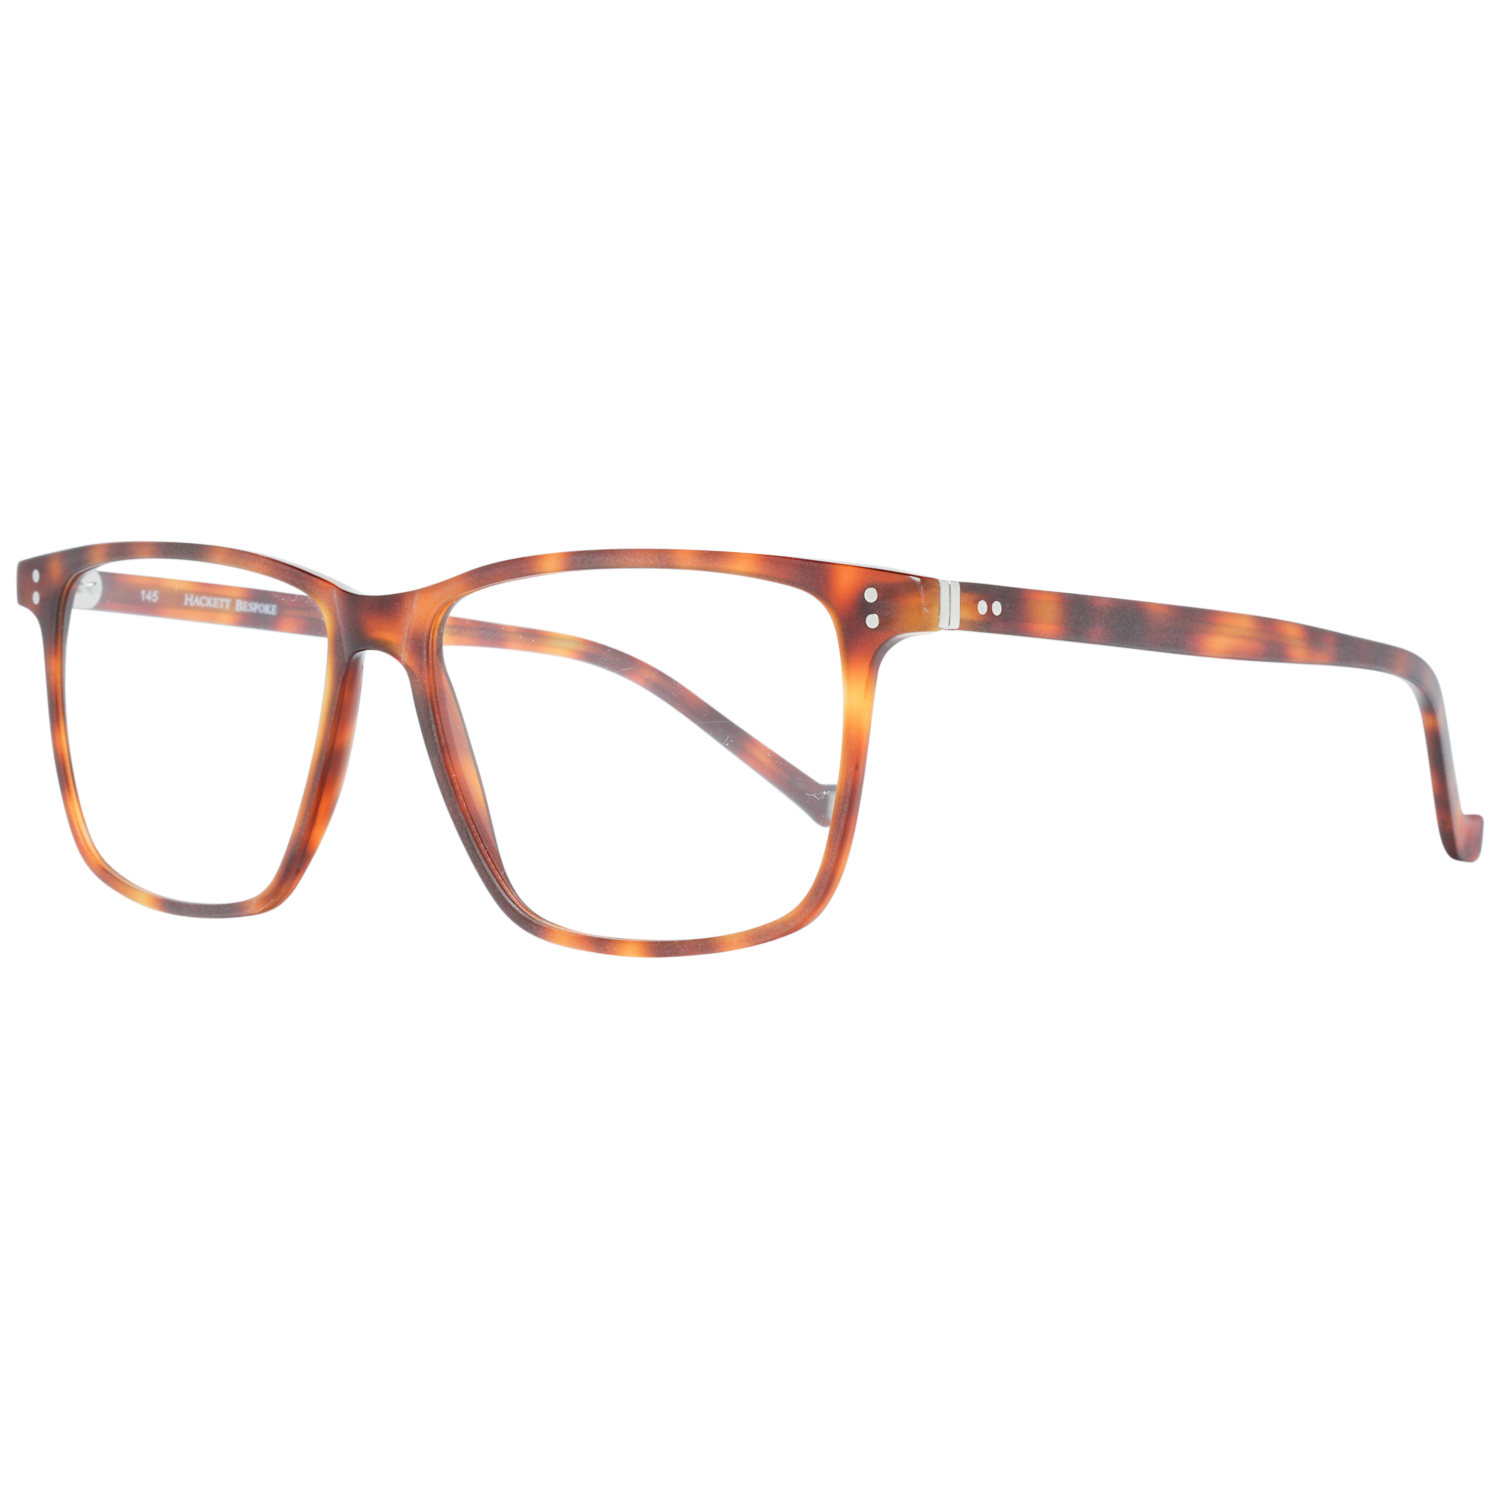 Hackett Bespoke Optical Frame HEB181 100 56 Brown